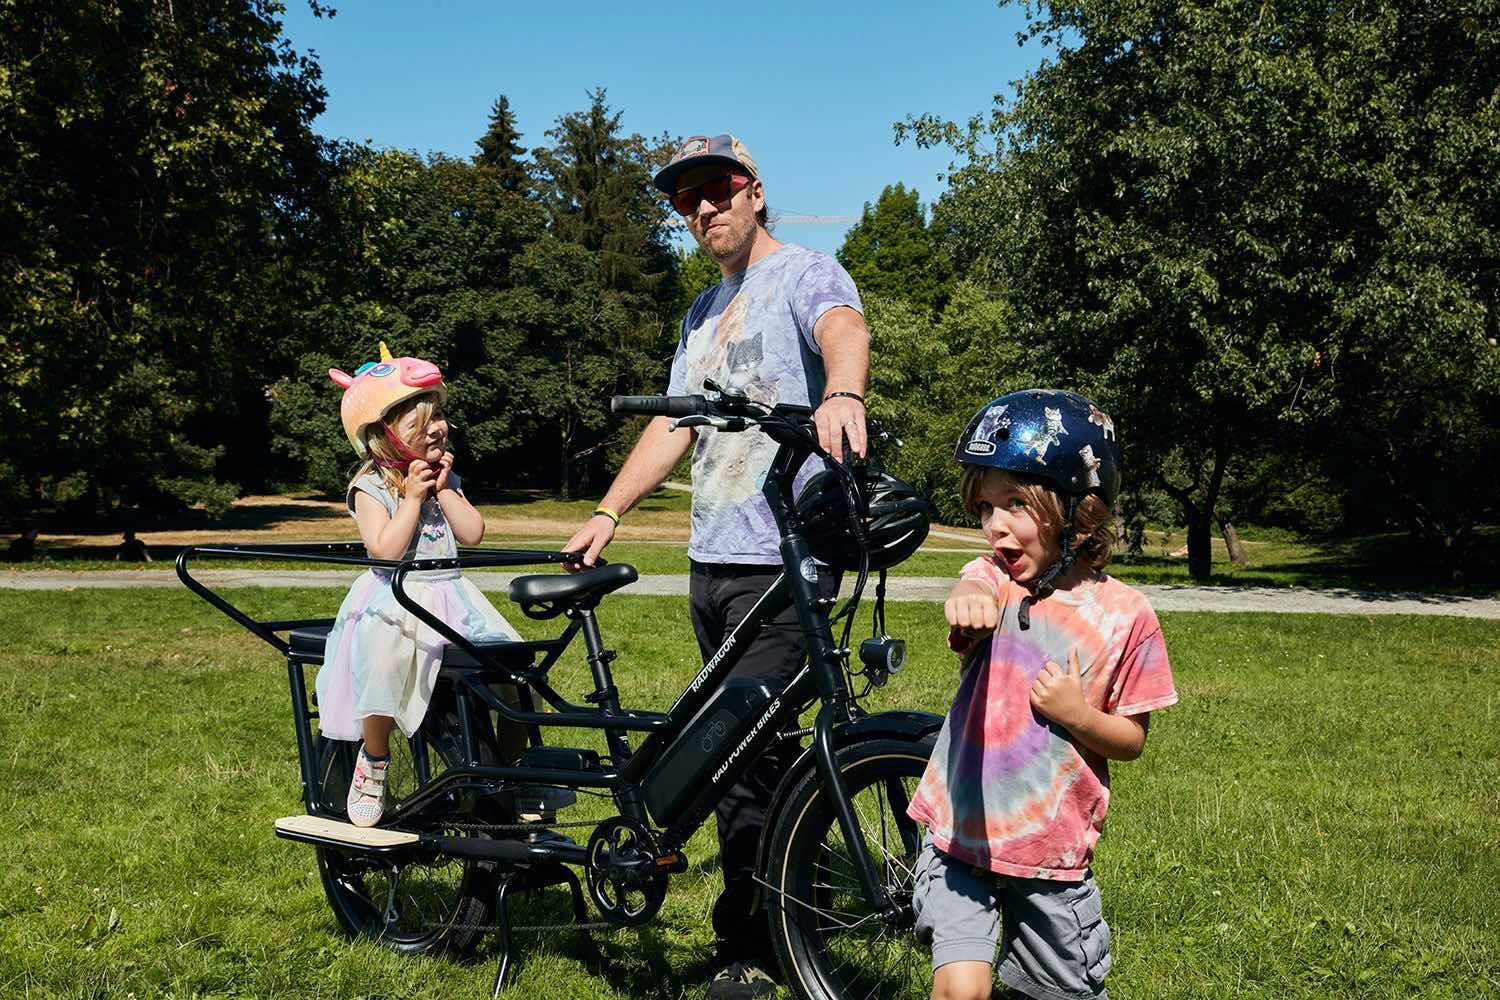 A child and father stand alongside a RadWagon in a park.